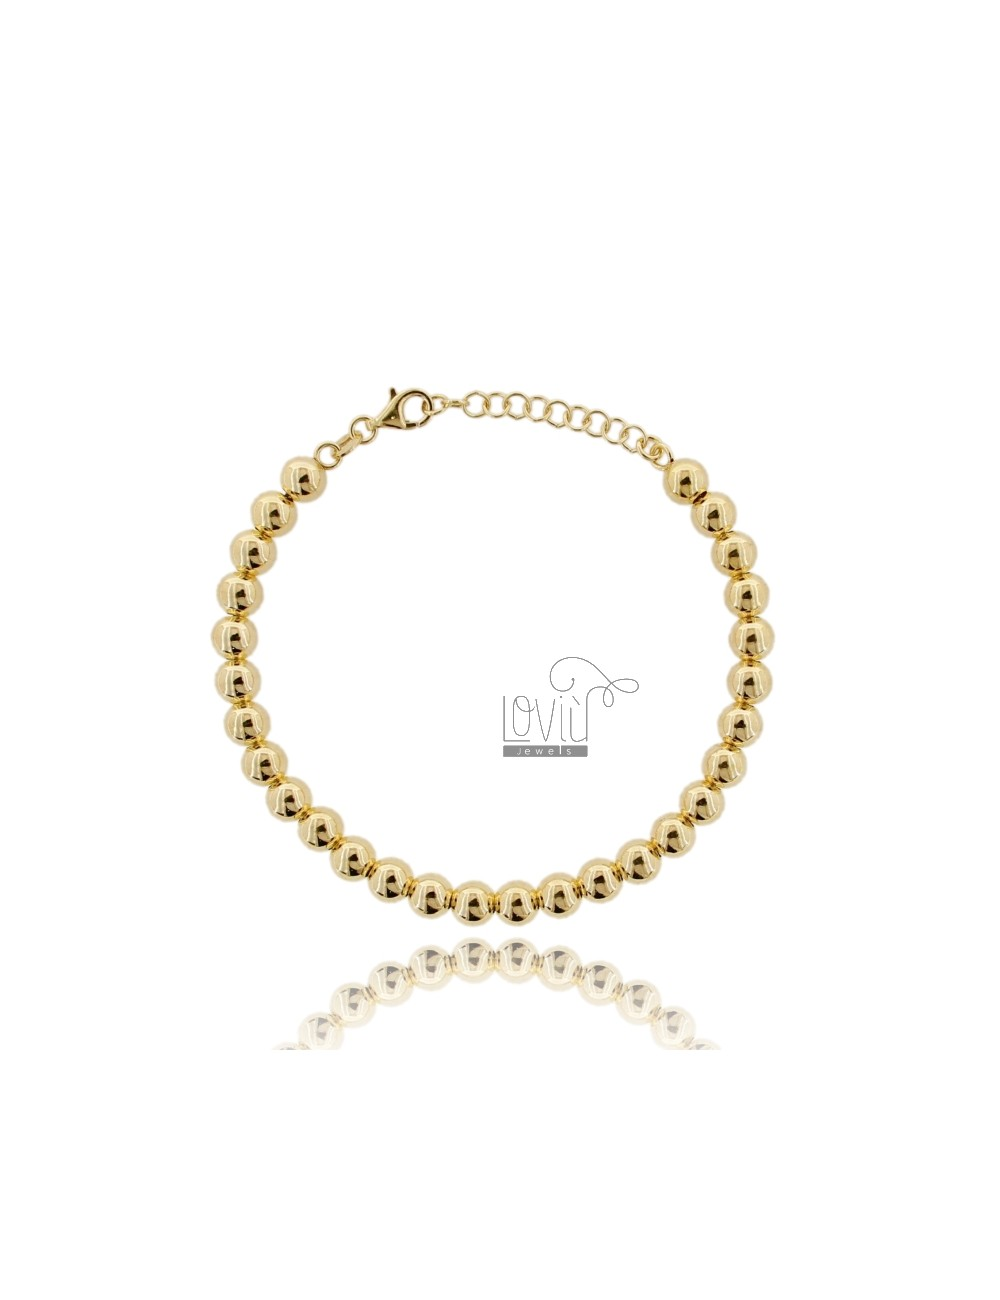 BRACELET BALL 6 MM SILVER GOLD PLATED 925 ‰ WITH CLOSURE